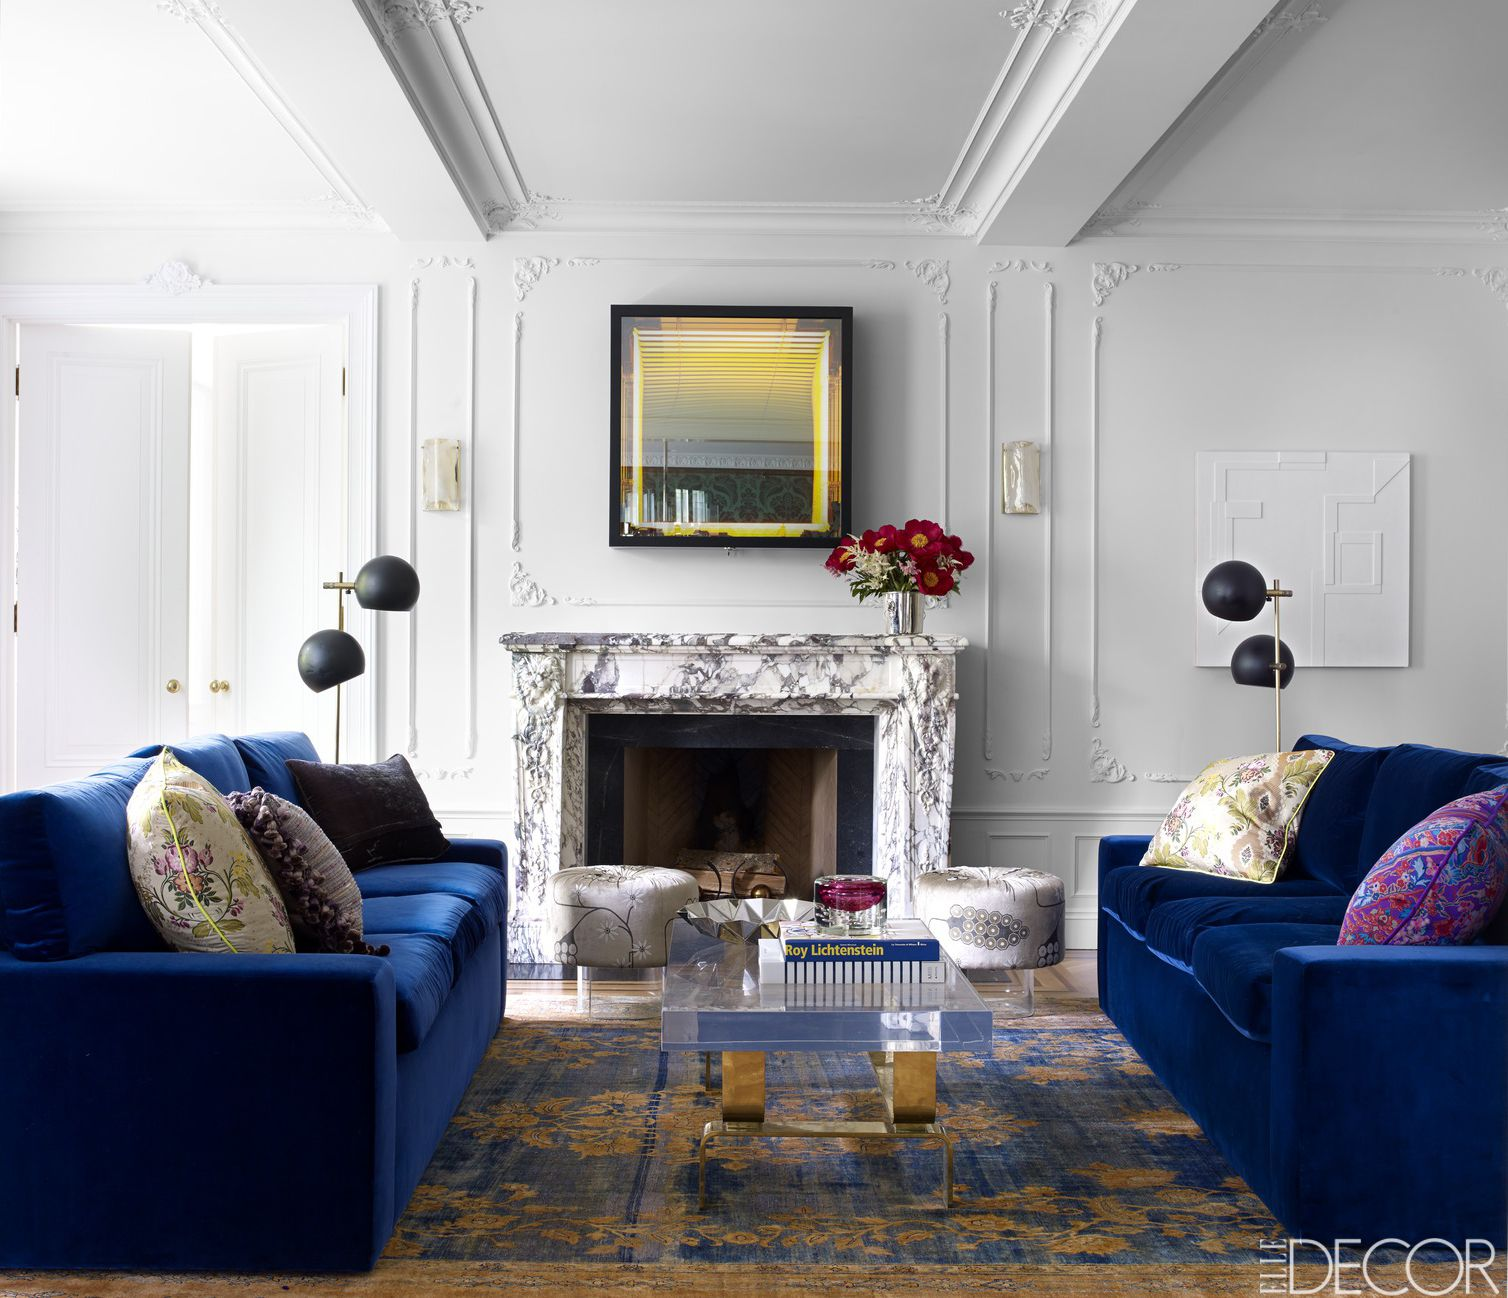 20 Dazzling Rooms Your Pinterest Dreams Are Made Of Elle Decor